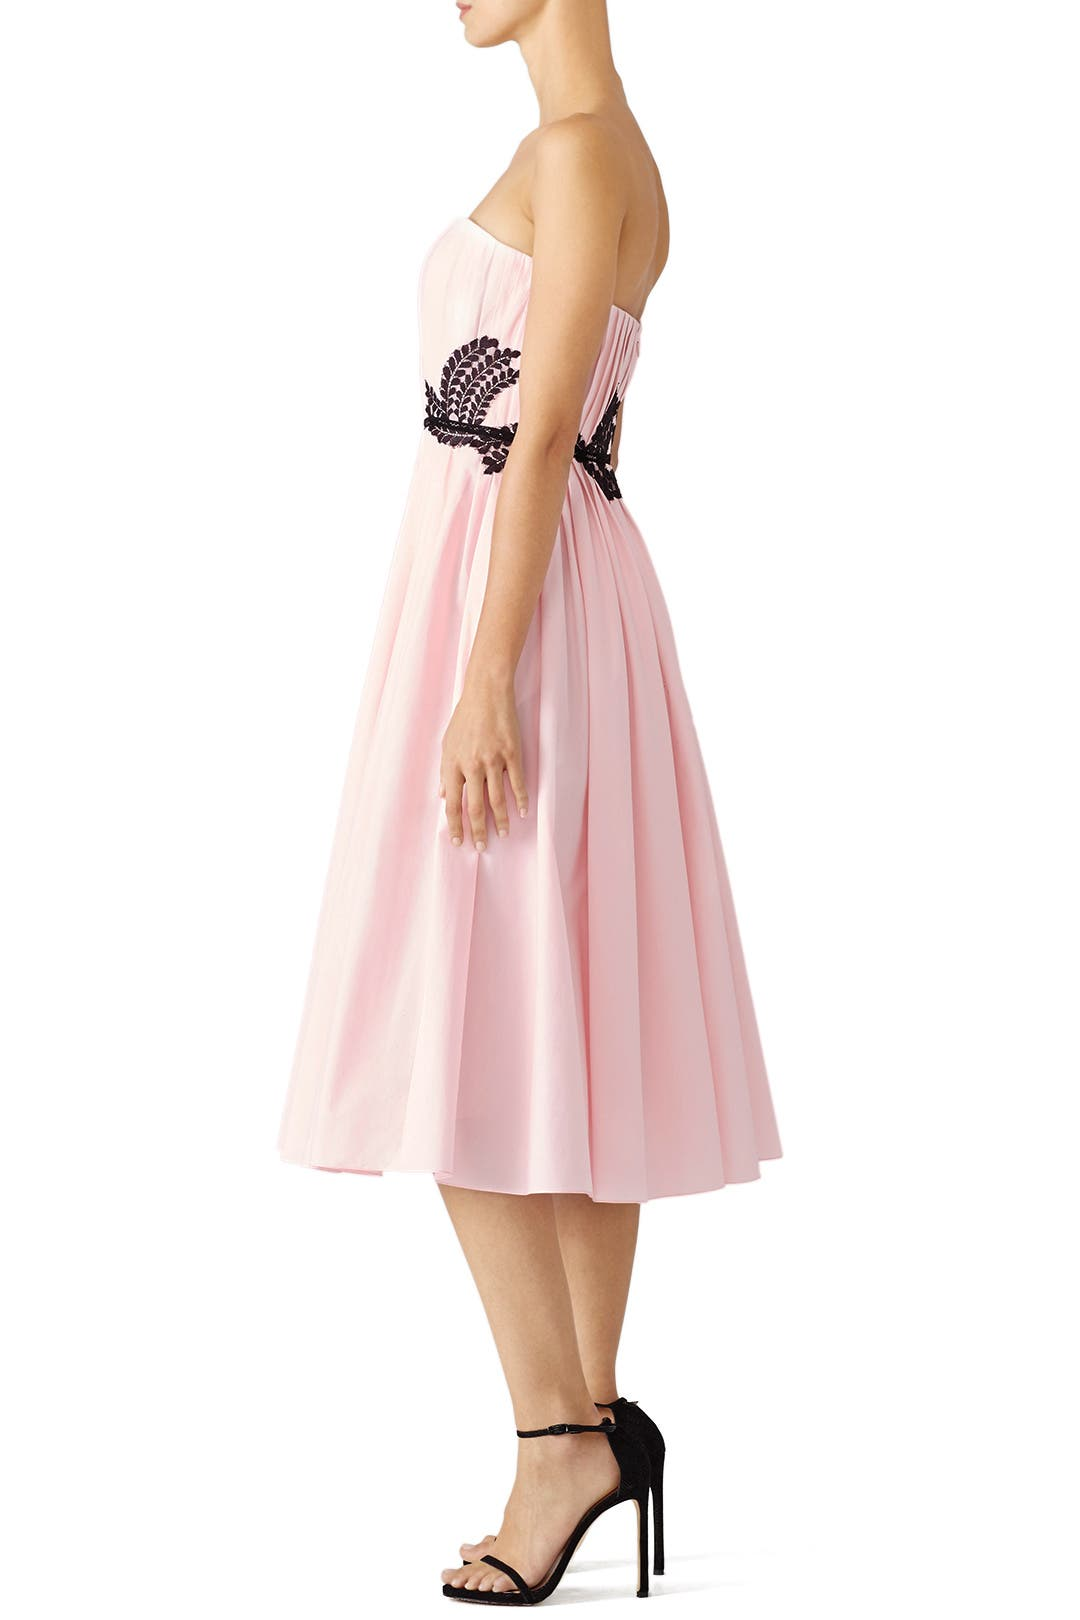 Pink Embroidered Midi Dress by J. Mendel for $340 | Rent the Runway